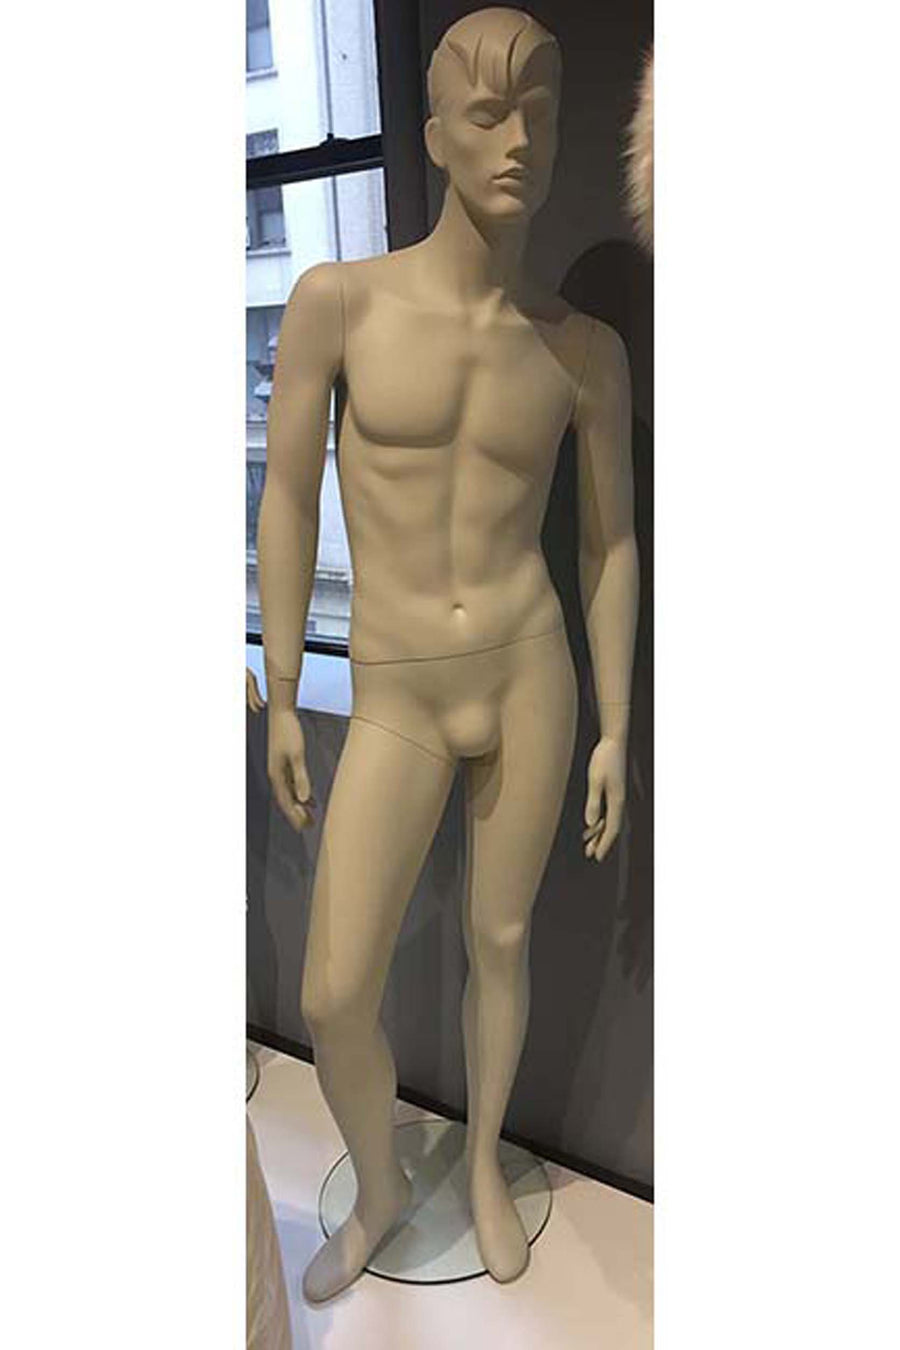 oyster white male mannequin with sculpted hair, arms at sides, and right leg slightly bent